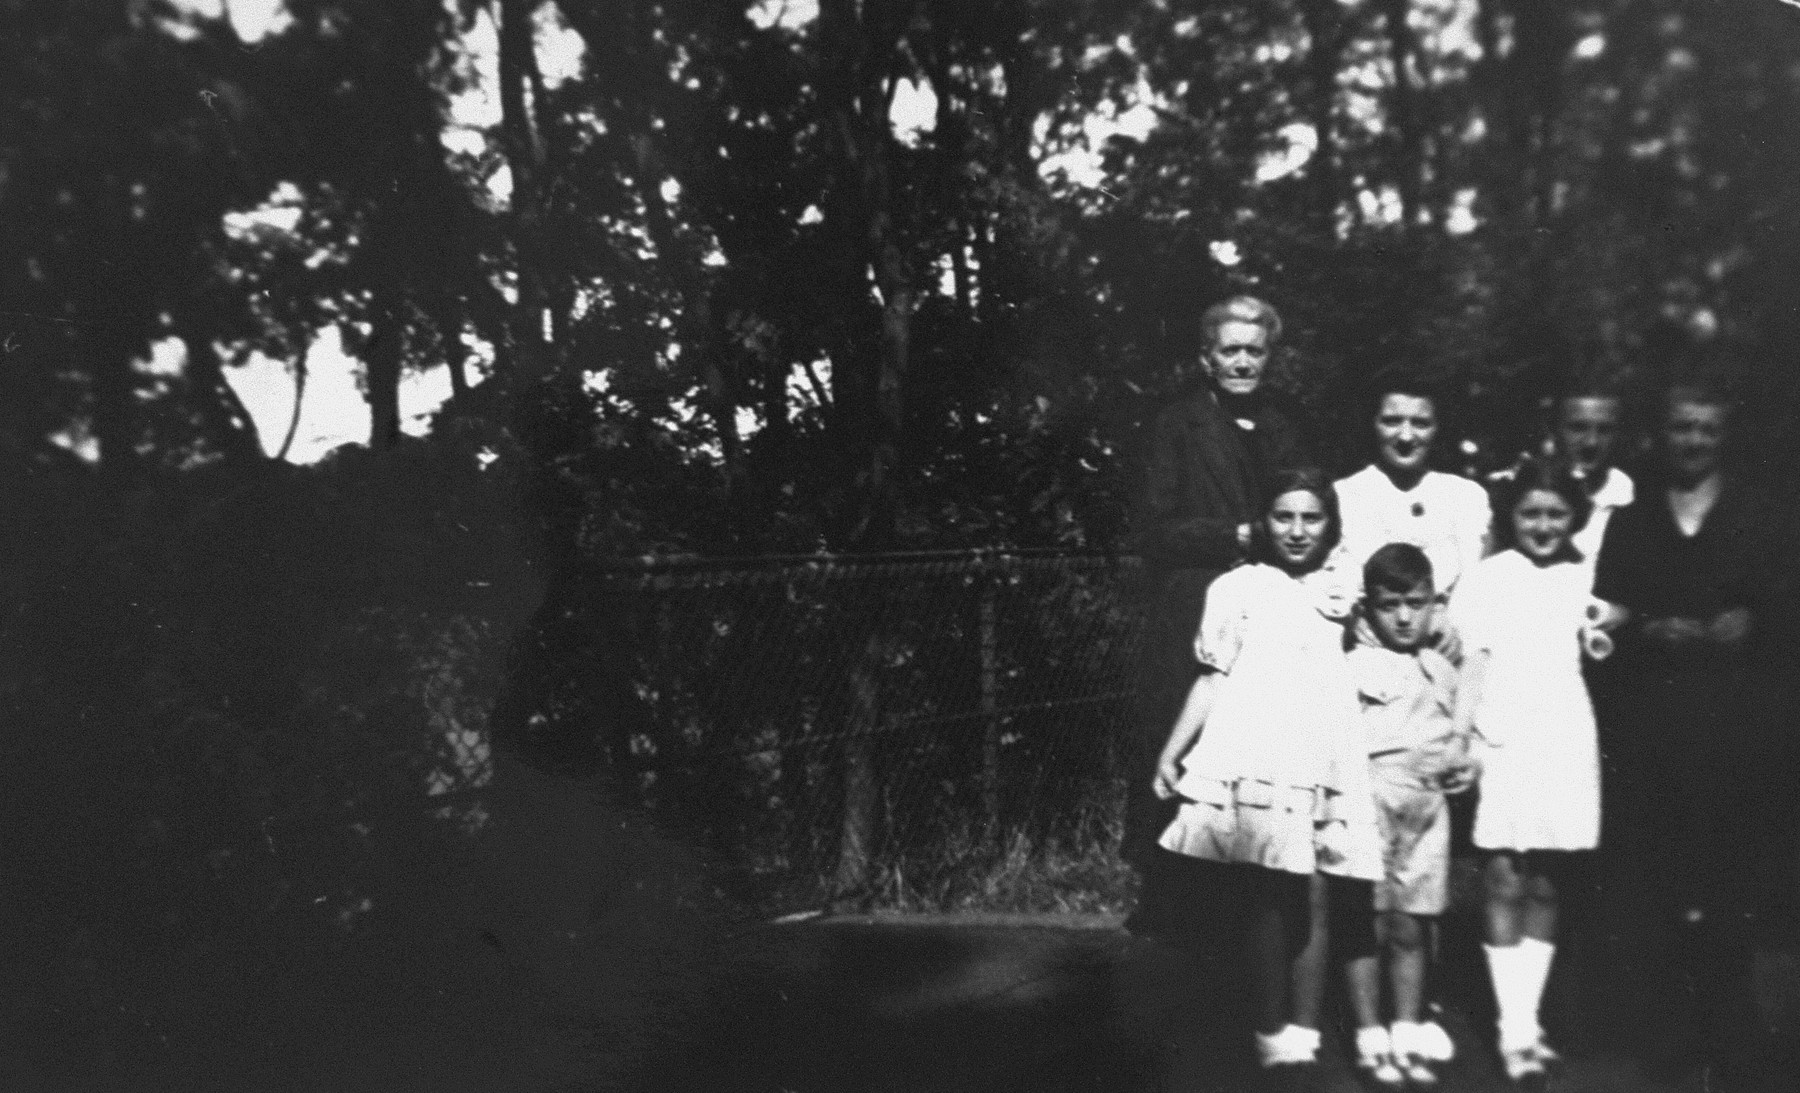 Chana Fajga Pesses poses with her children and members of the Leroux family, who are hiding them, during a visit to their home in Brou.  Pictured in the front row, from left to right, are: Marcelle Rotleder (another hidden child), Albert Pesses and Berthe Pesses.  In the back row, from left to right, are: Mme. Tricheux, Chana Fajga Pesses, Edith Leroux and Mme. Leroux.